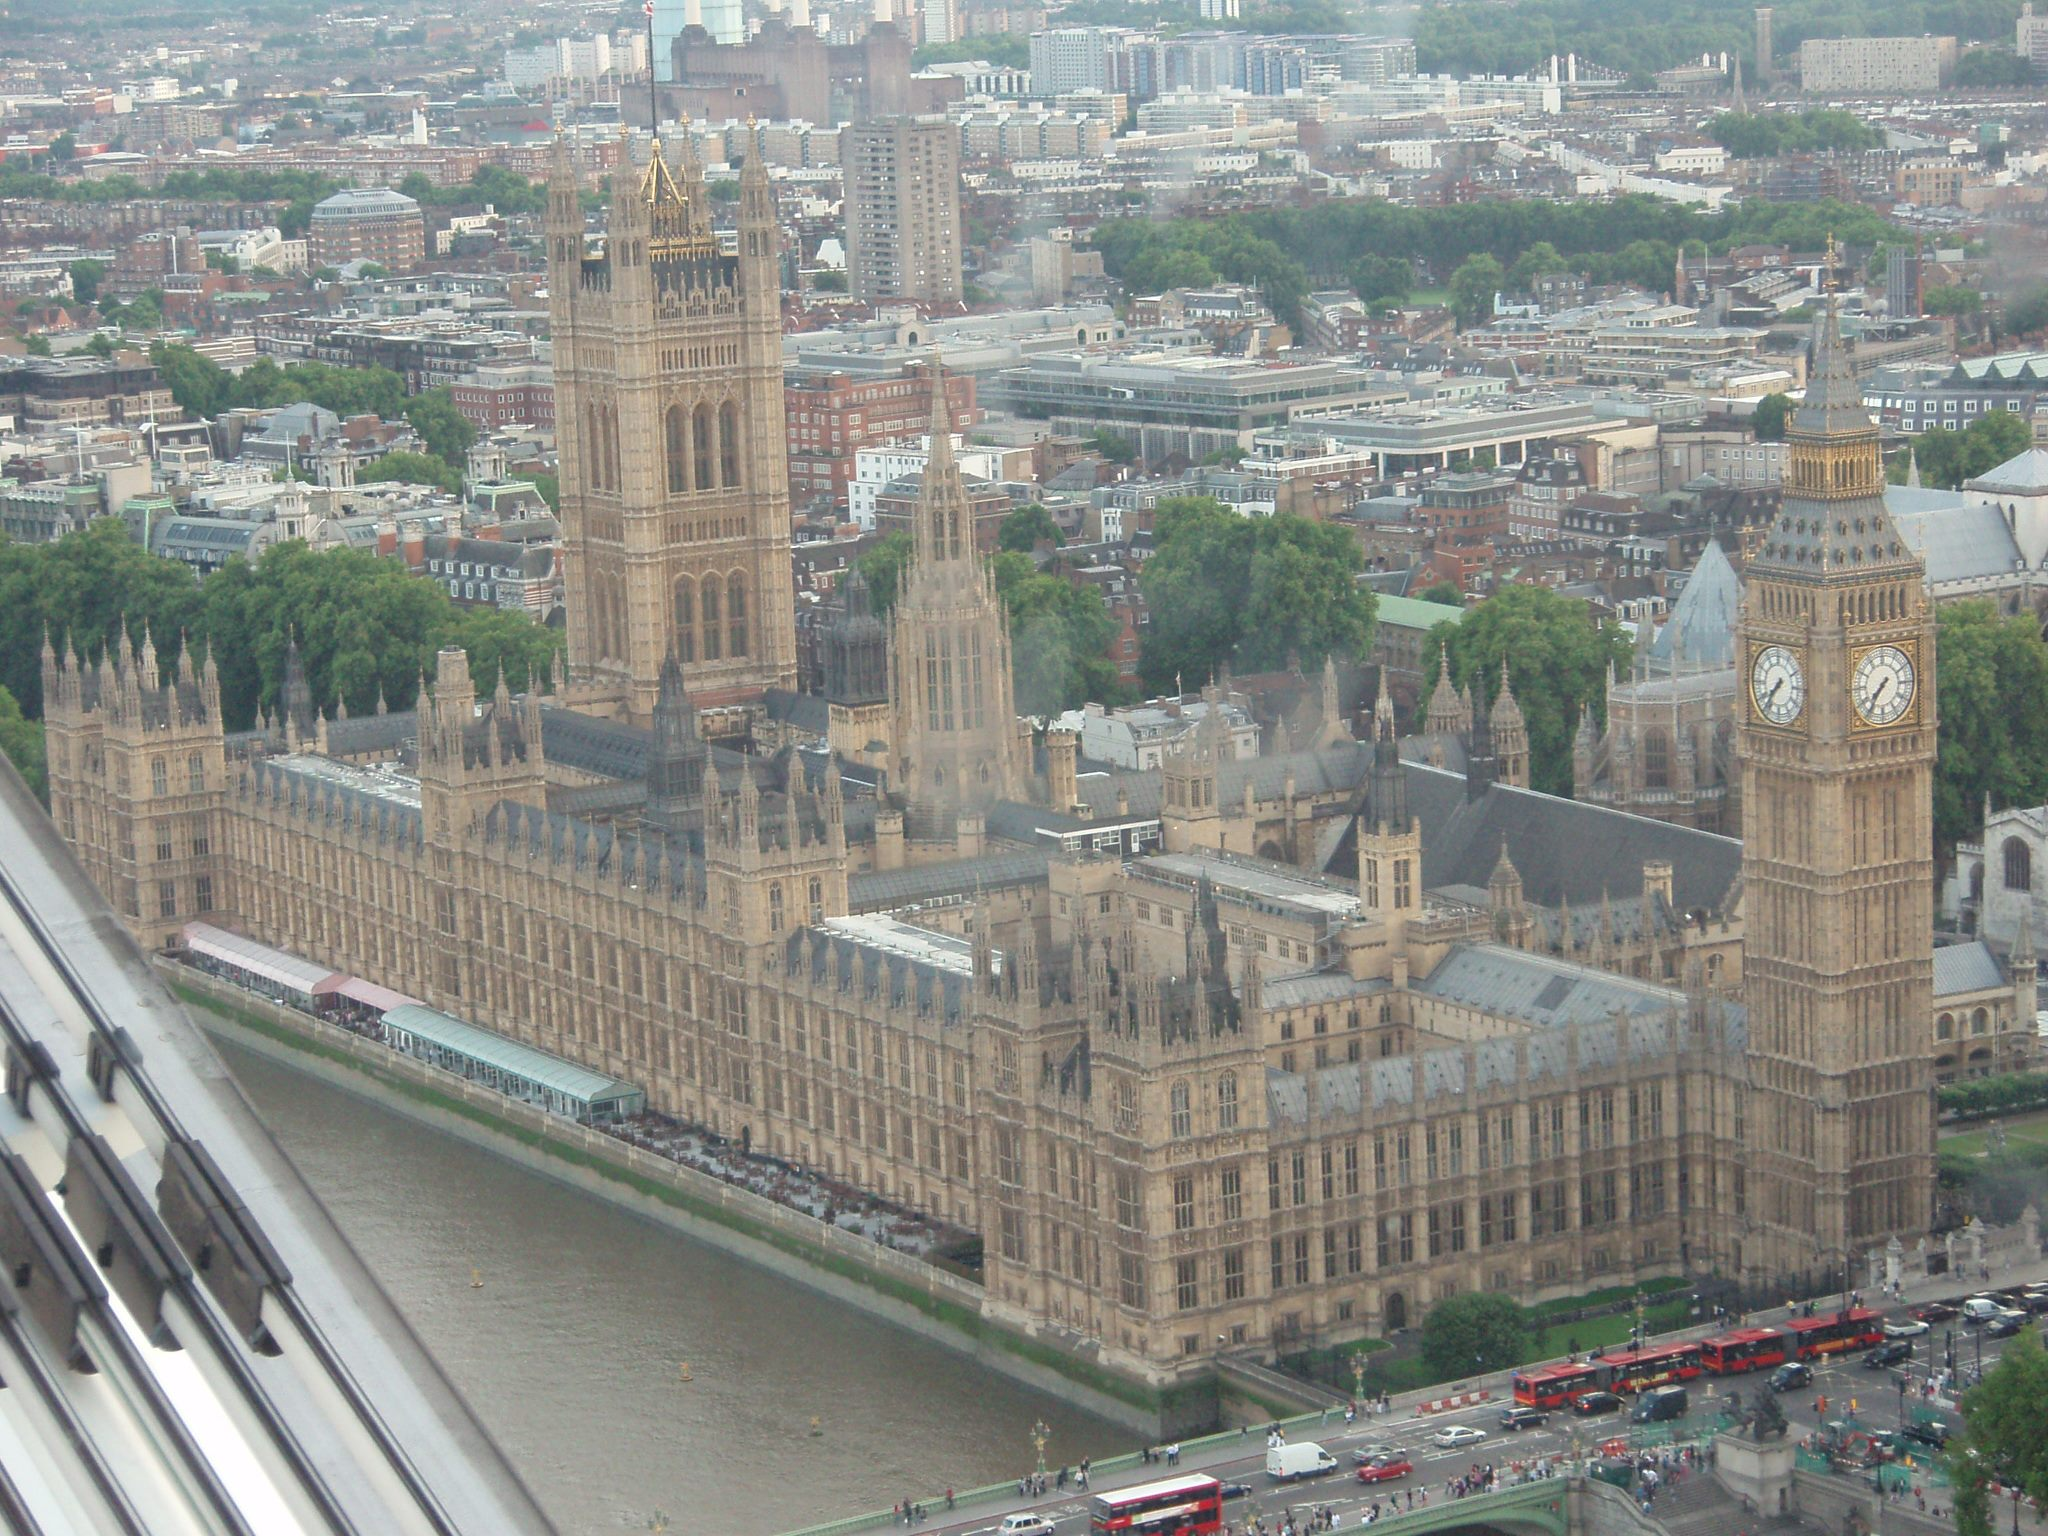 View of Big Ben from the London Eye